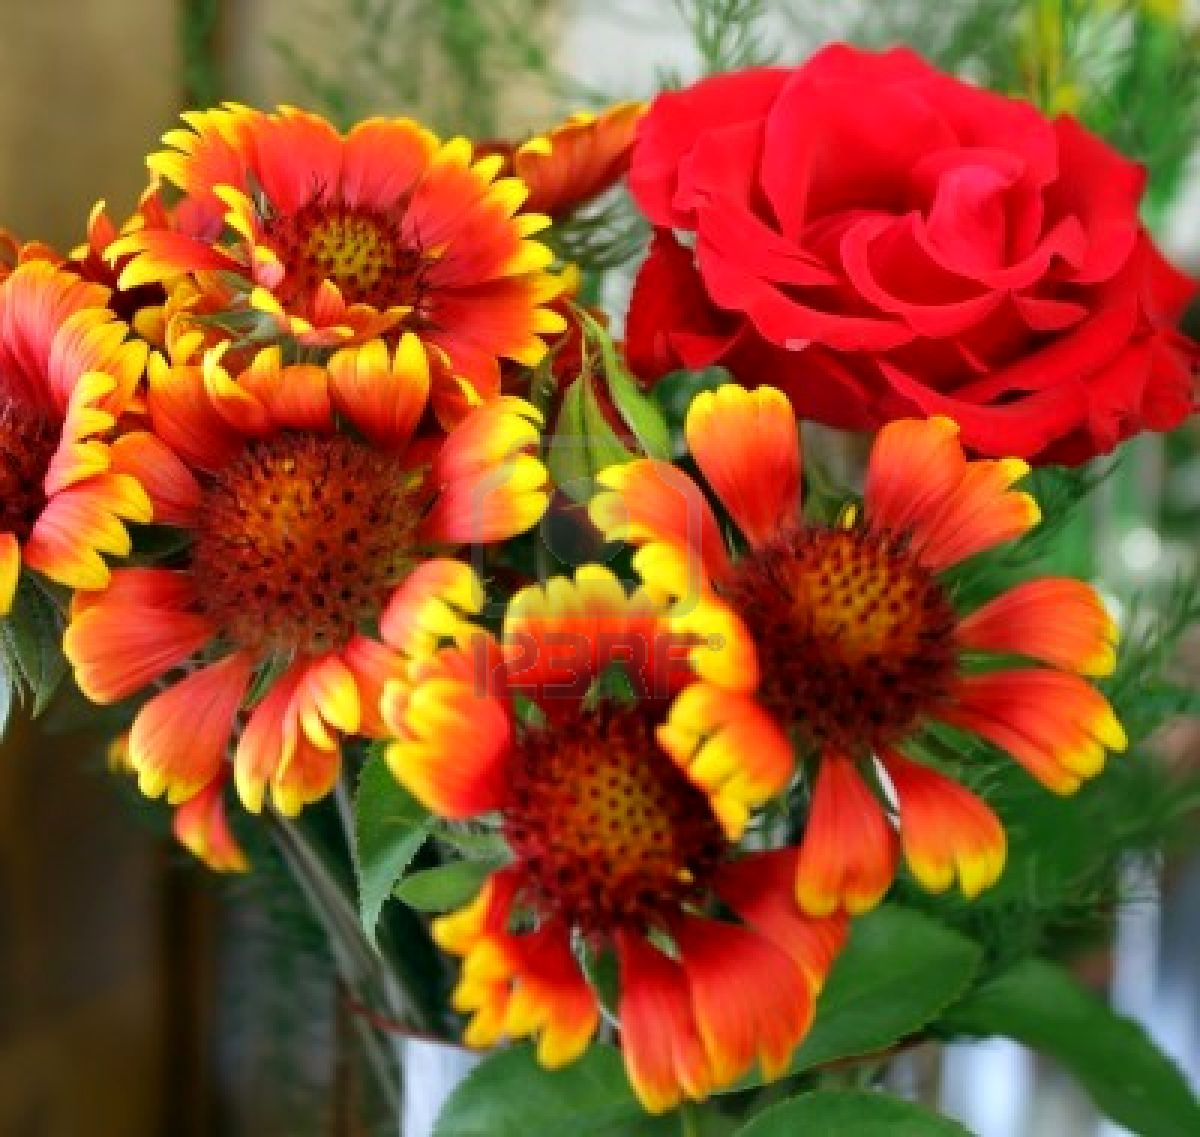 free flowers photo and wallpapers red rose flowers pictures, Beautiful flower